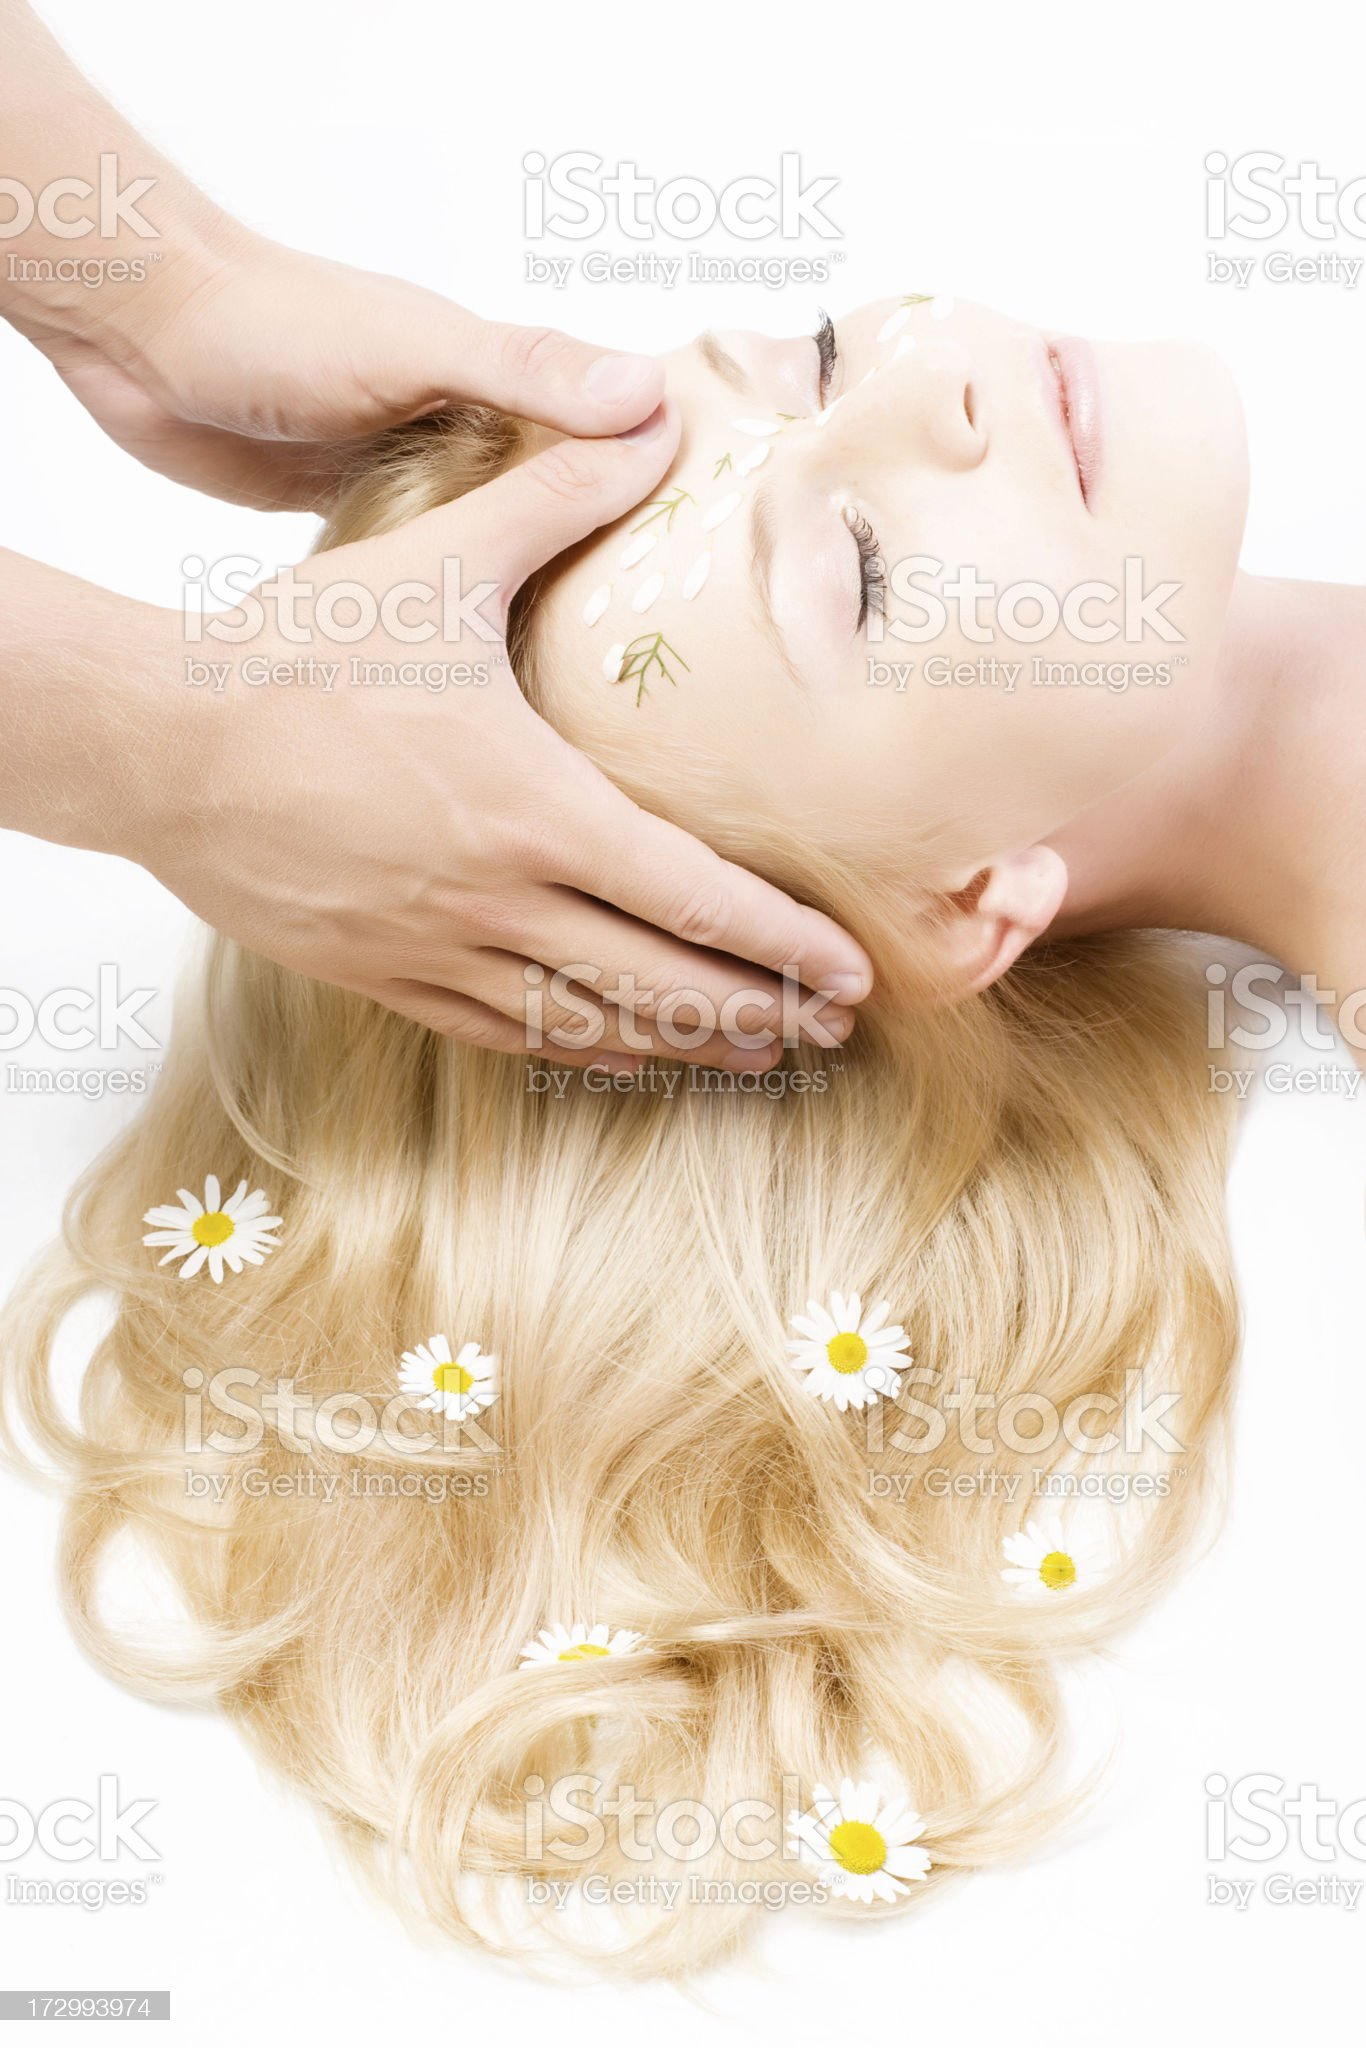 Closeup of human hands massaging a young pretty woman's face royalty-free stock photo